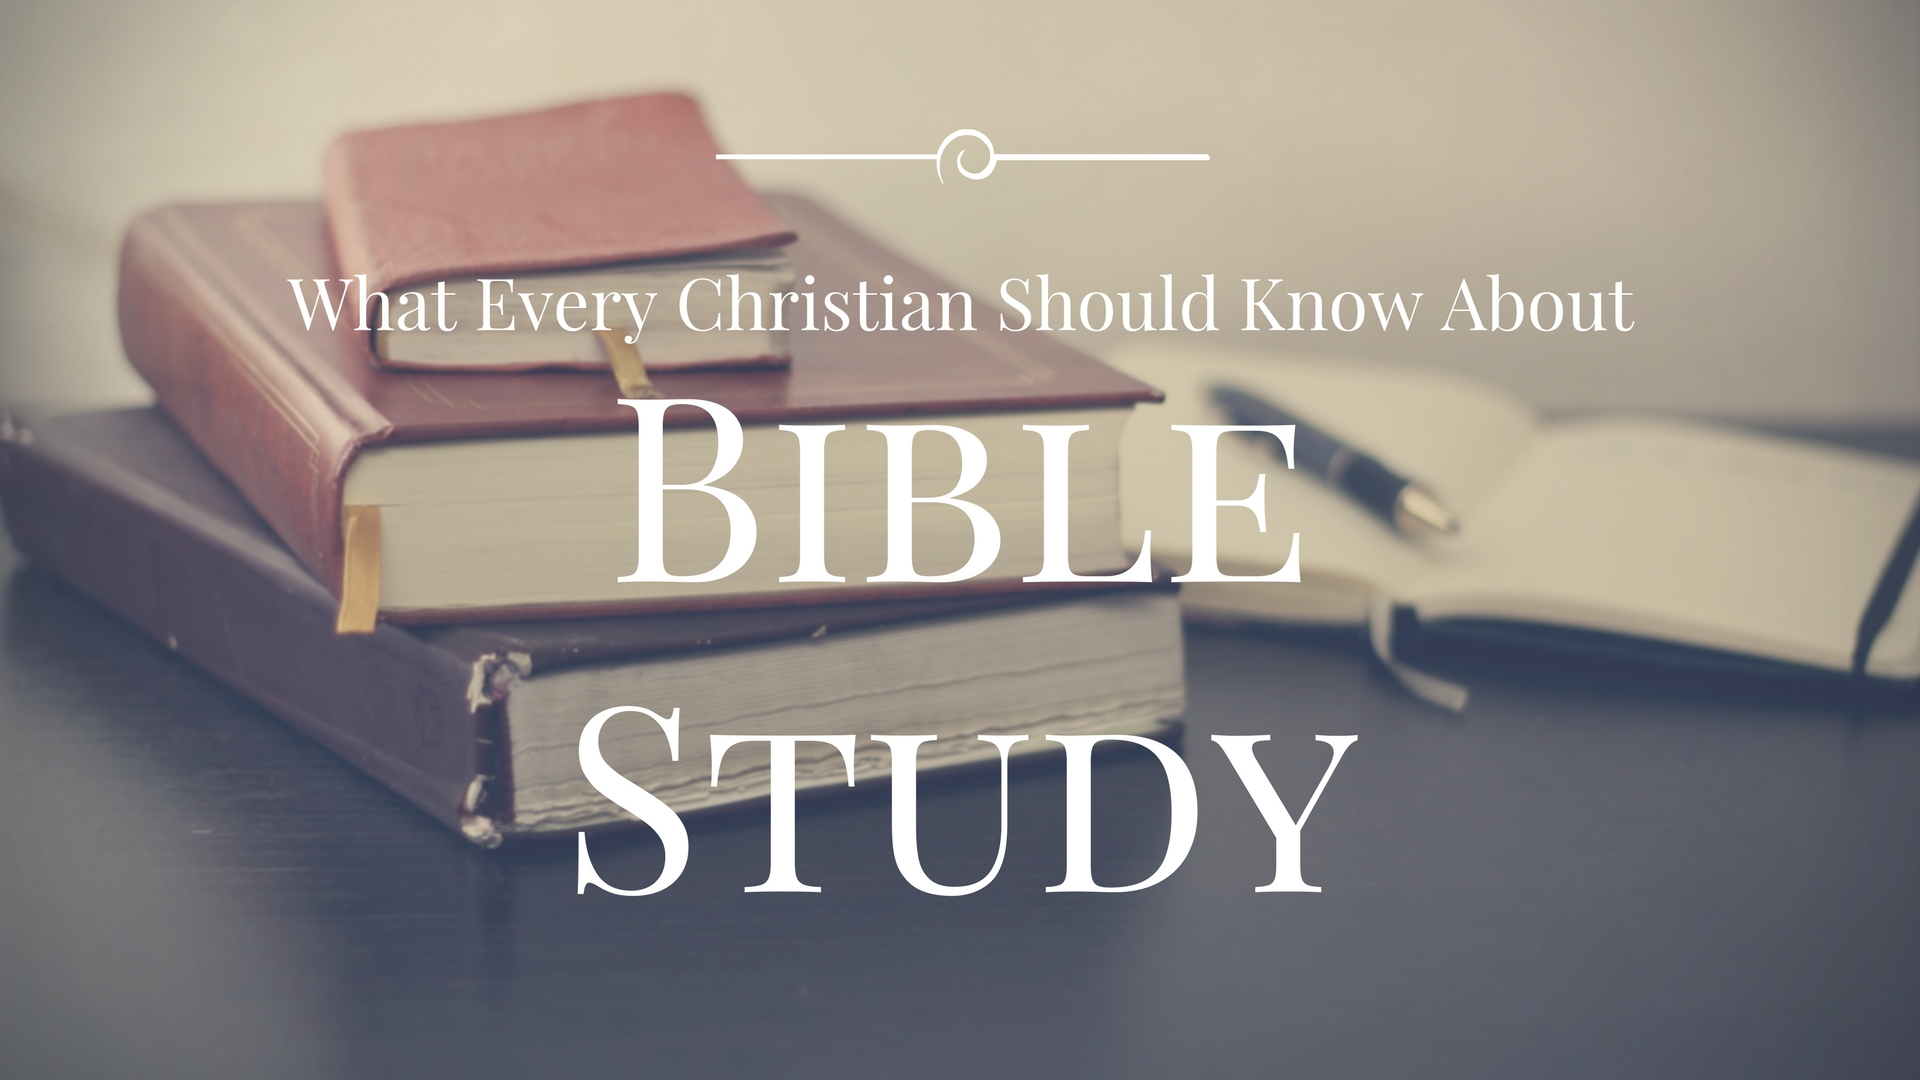 What is the Purpose of Bible Study?